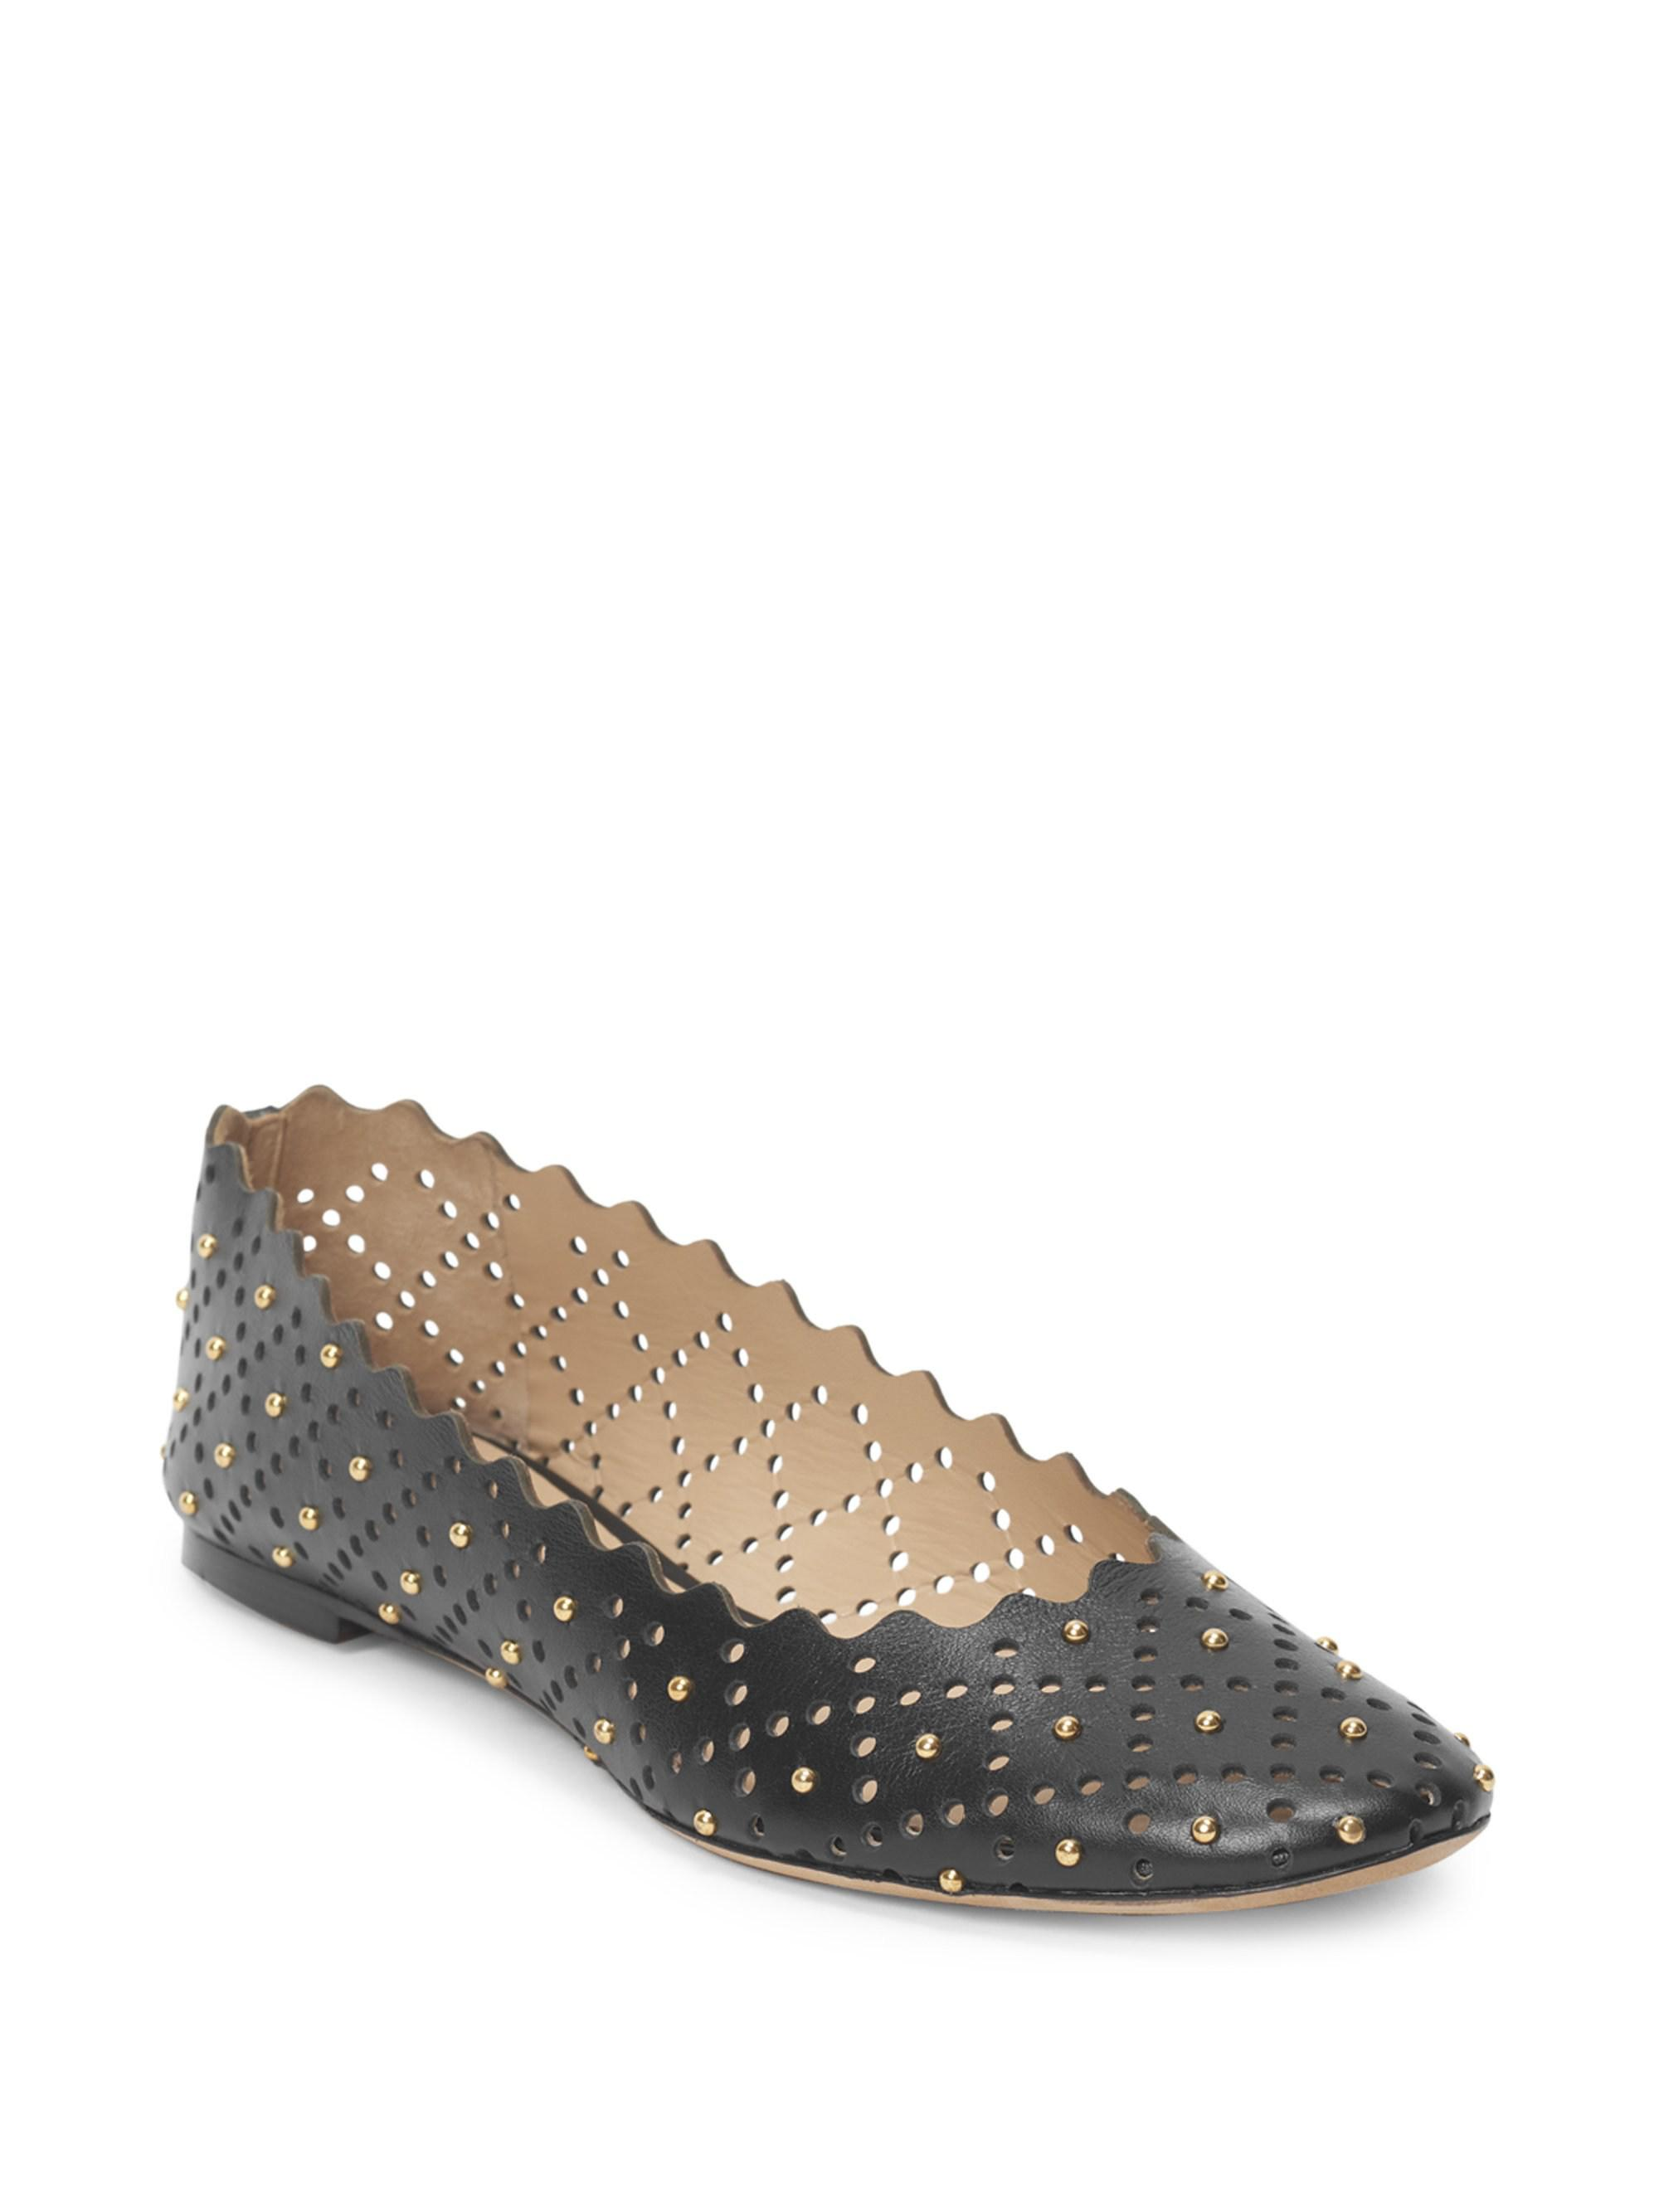 59c02ee3f chloe-black-Lauren-Perforated-Studded-Leather-Ballet-Flats.jpeg